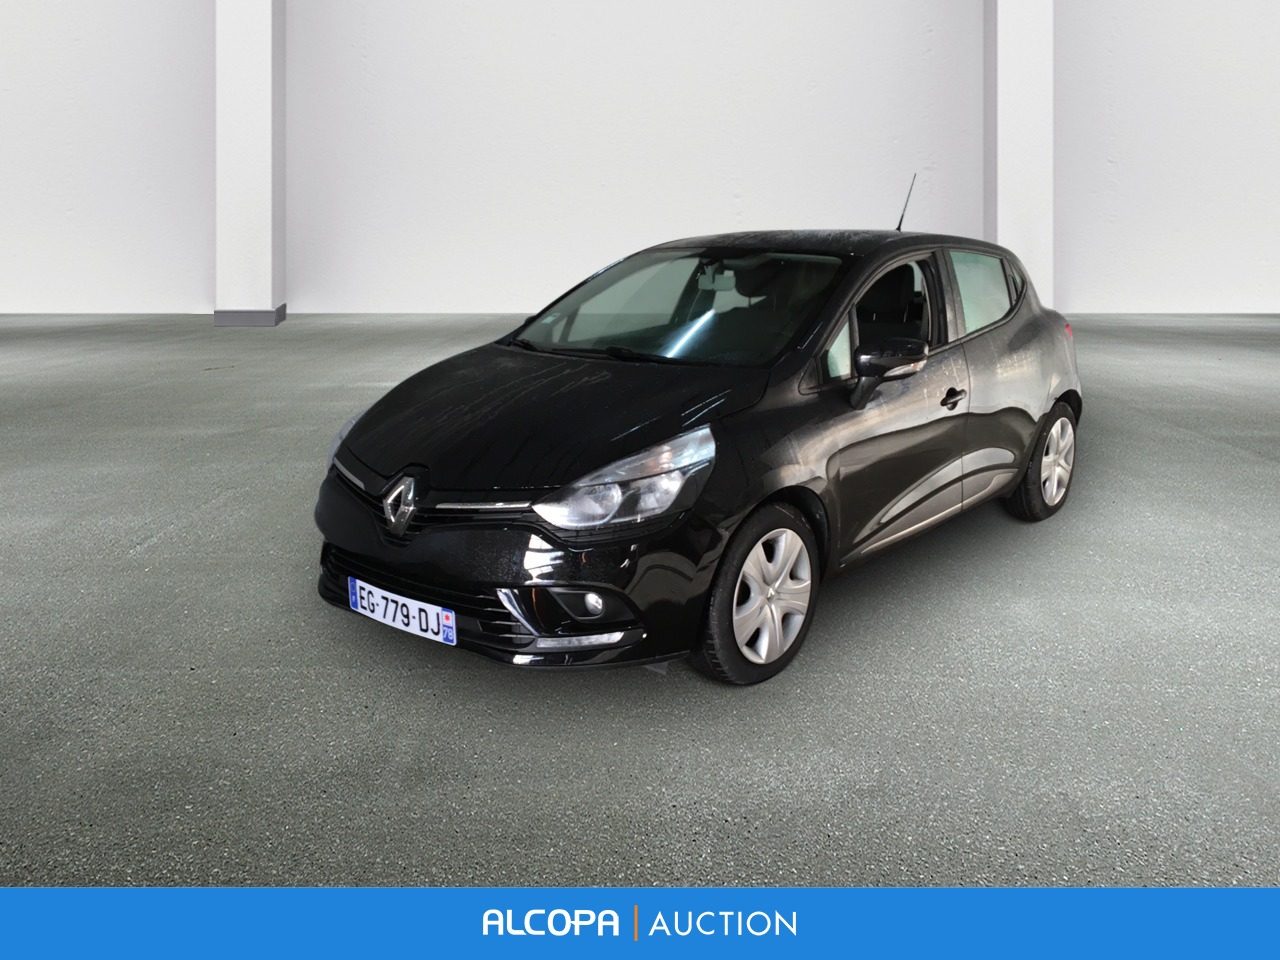 renault clio iv clio dci 75 energy life alcopa auction. Black Bedroom Furniture Sets. Home Design Ideas